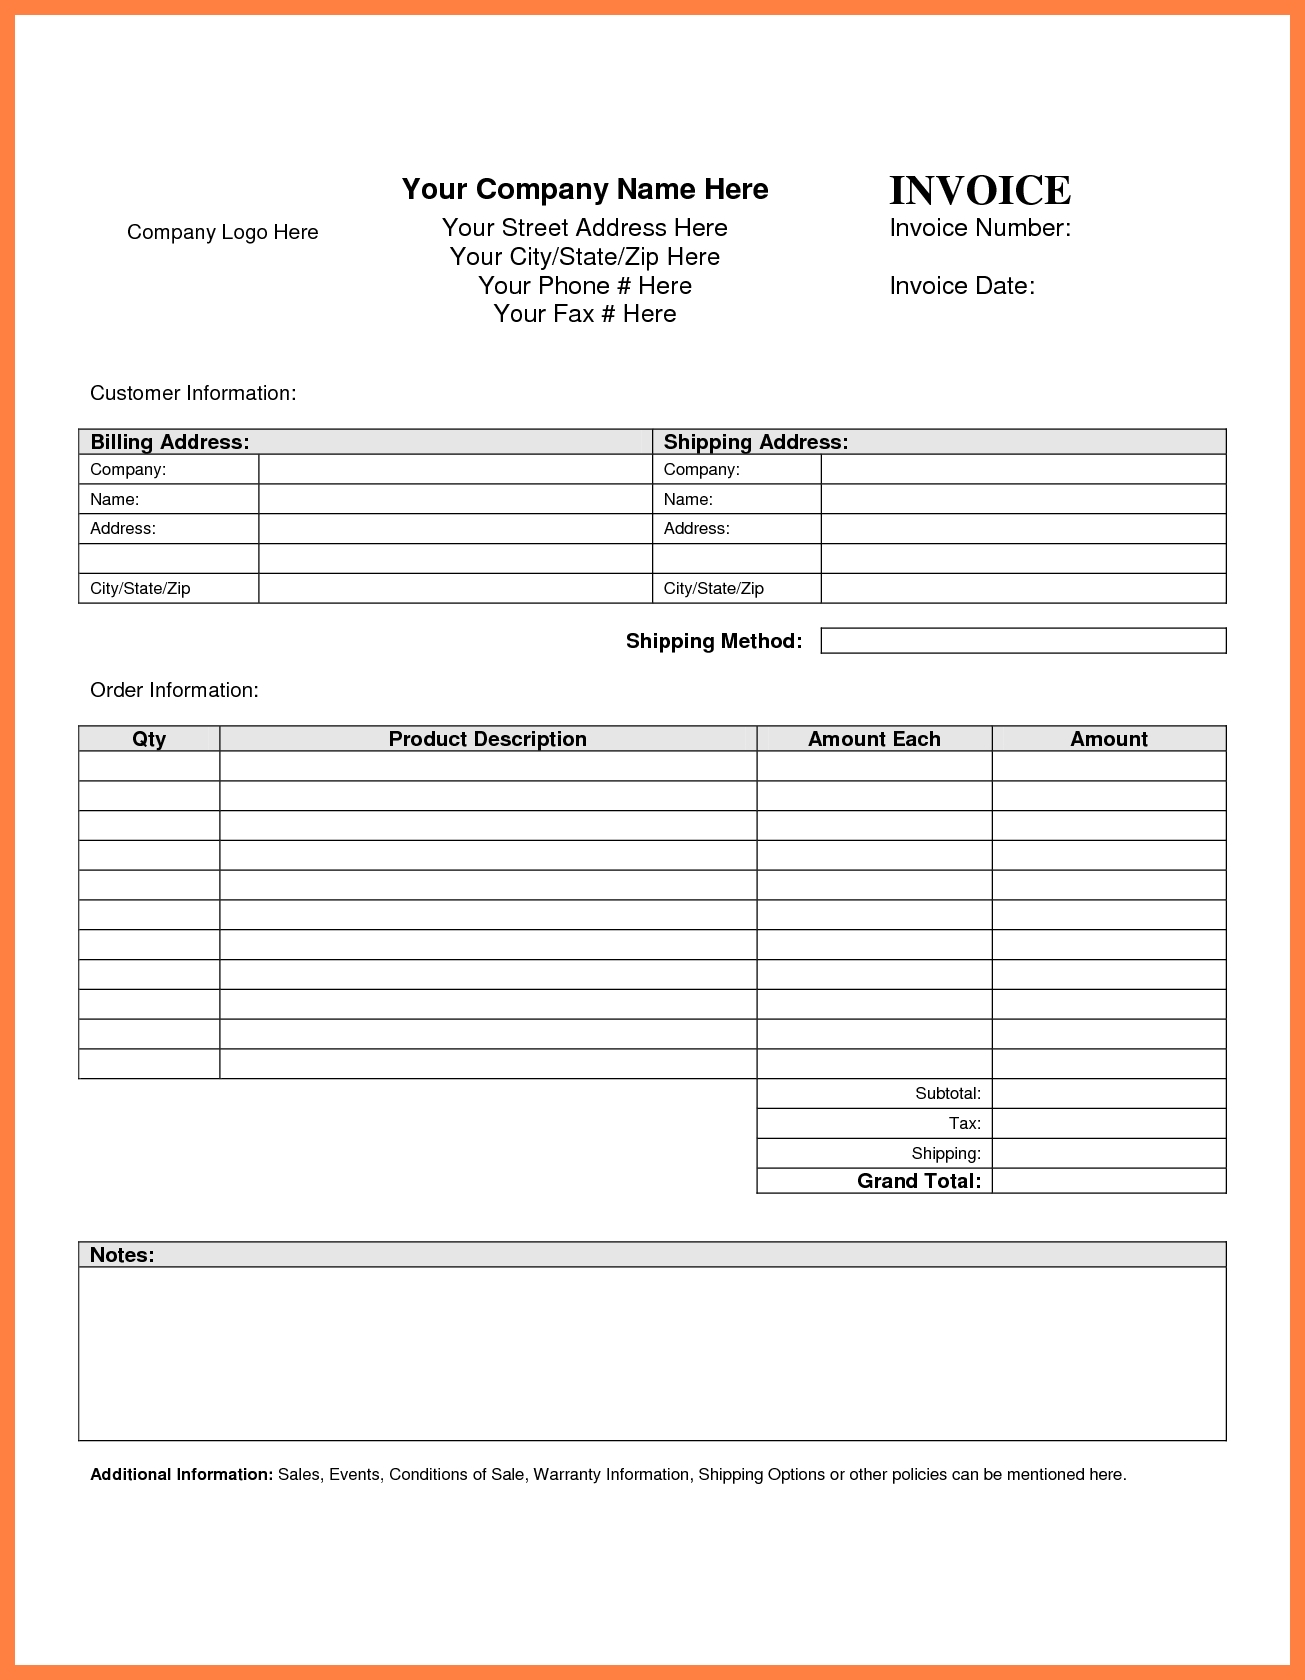 google drive templates invoice | cover letter samples, Invoice templates